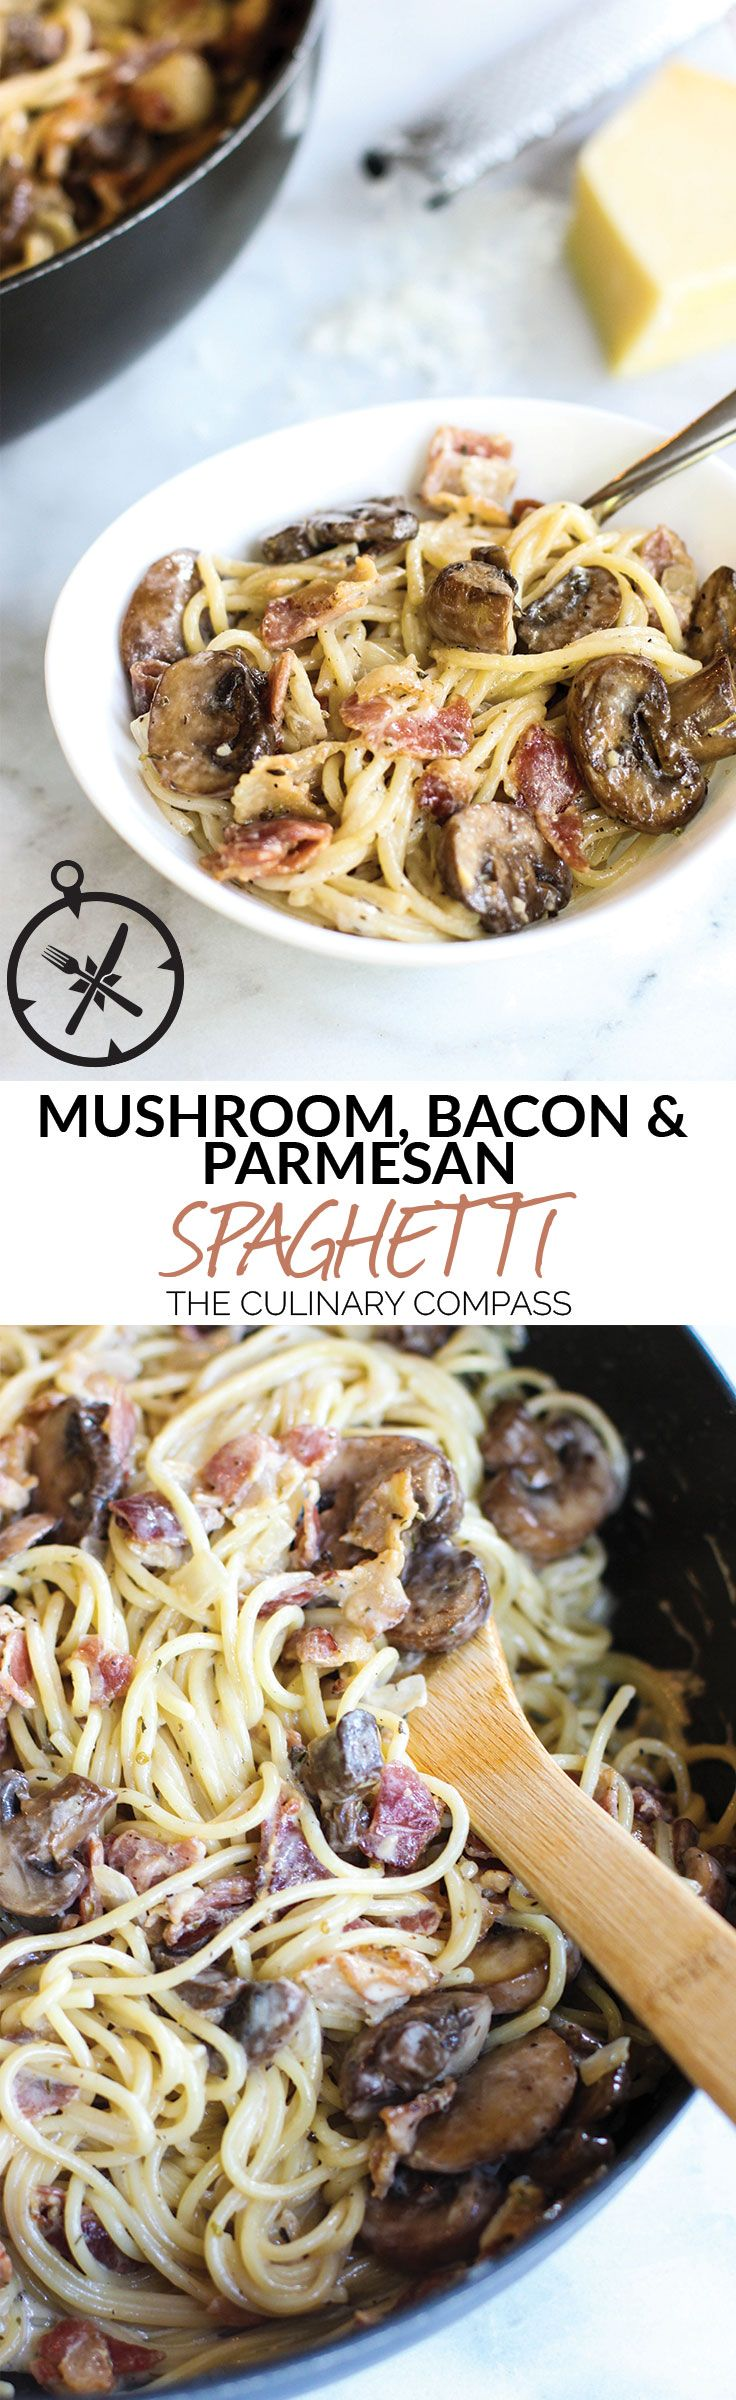 Mushroom, Bacon, and Parmesan Spaghetti via @culinarycompass